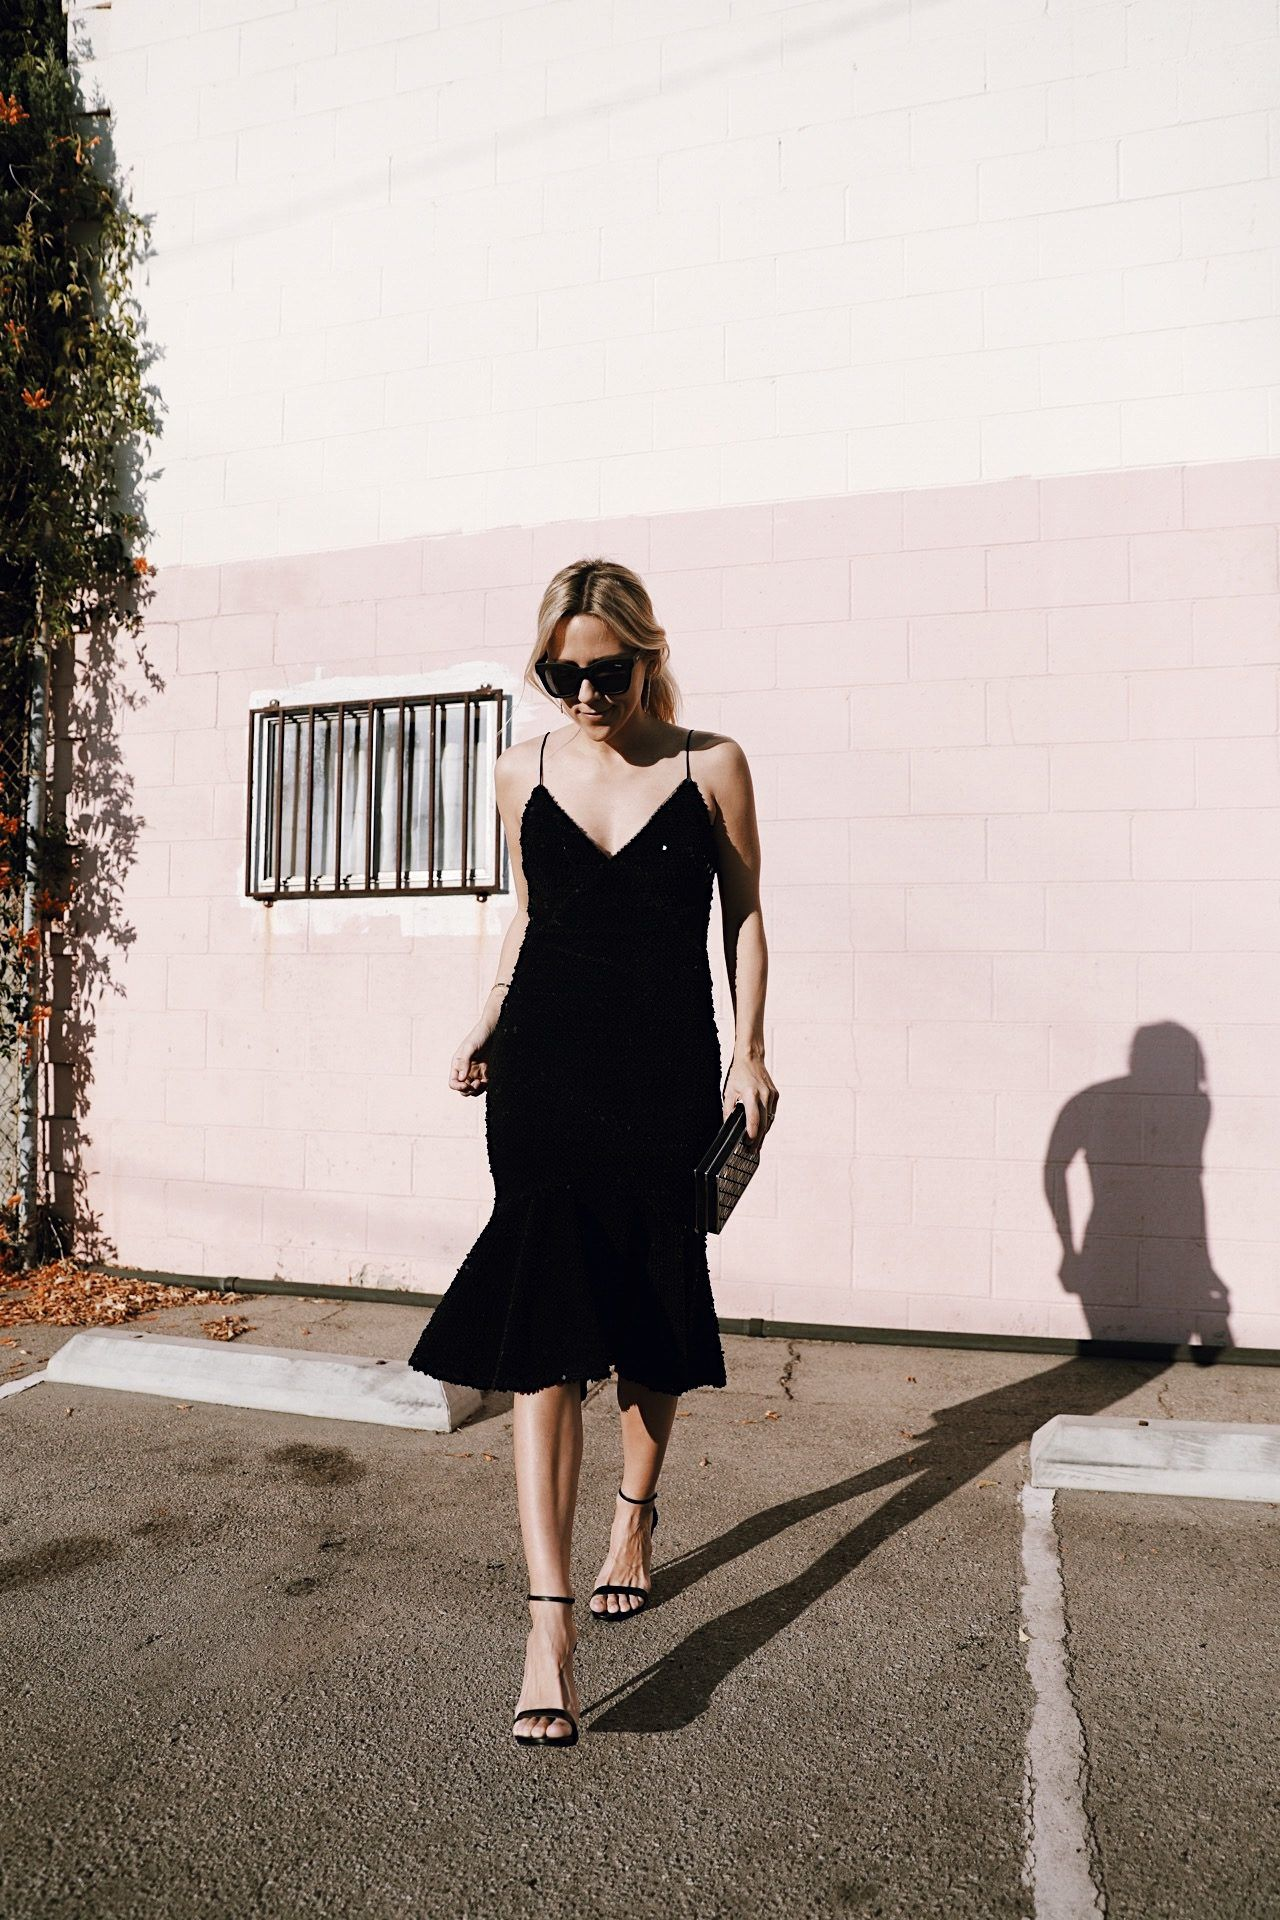 Perfect Dresses For Nye Damsel In Dior Black Tie Wedding Guest Dress Perfect Dress Engagement Party Outfit [ 1920 x 1280 Pixel ]